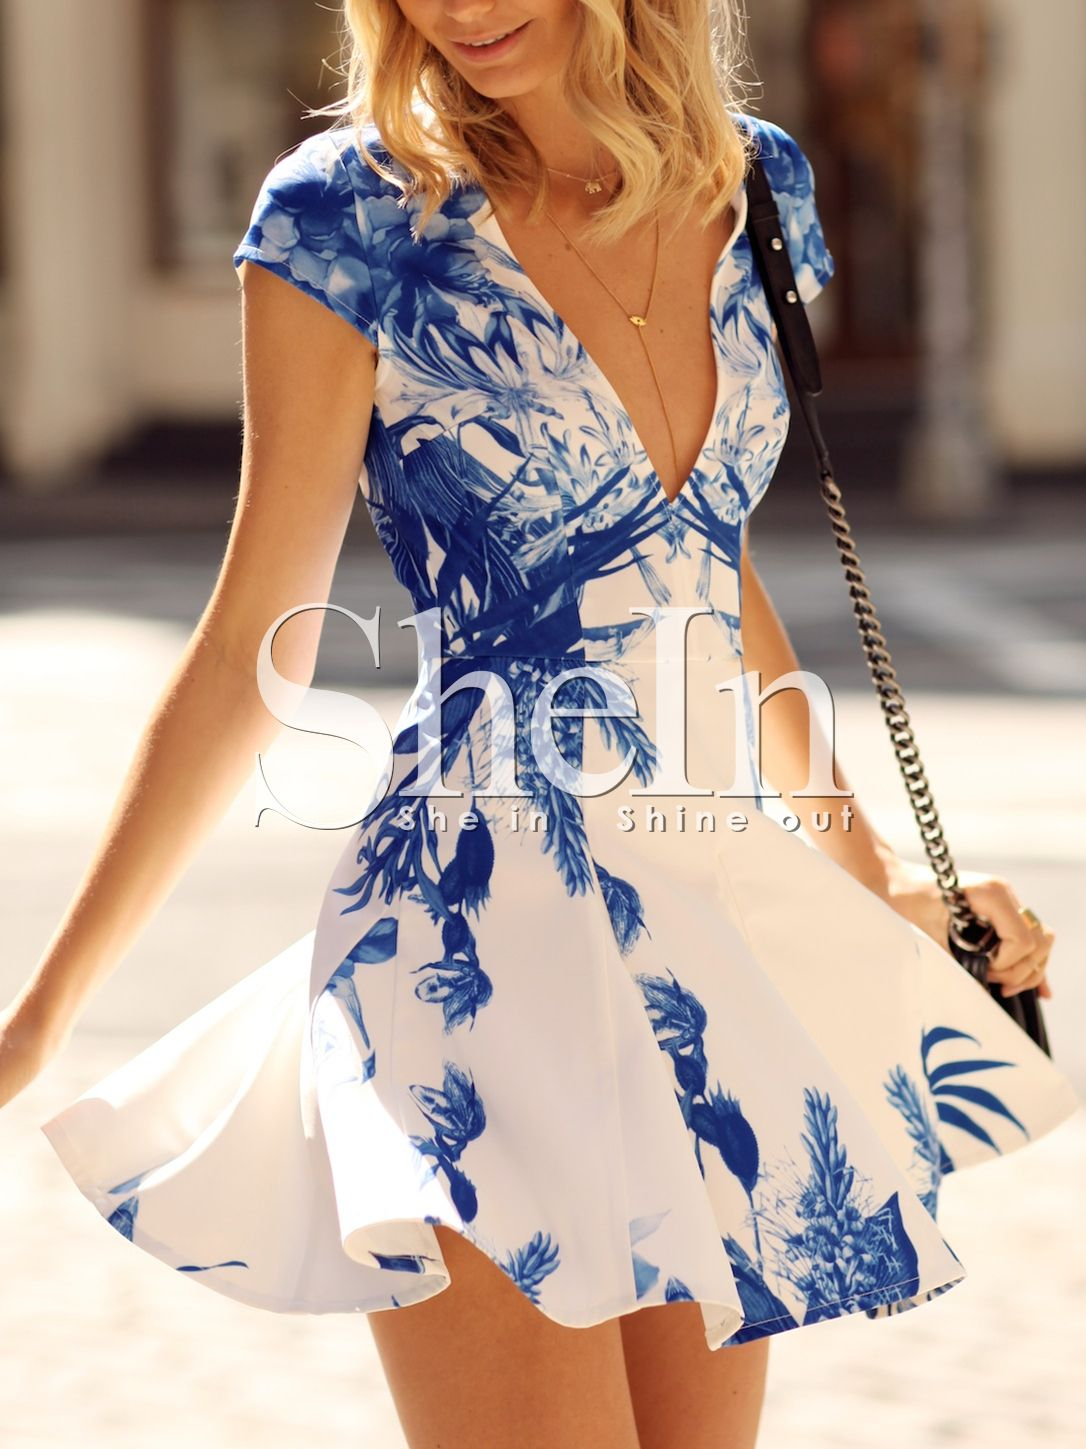 559e98bb6c94 White Cap Sleeve V Neck Floral Print Dress 15.99 | Say Yes To The ...